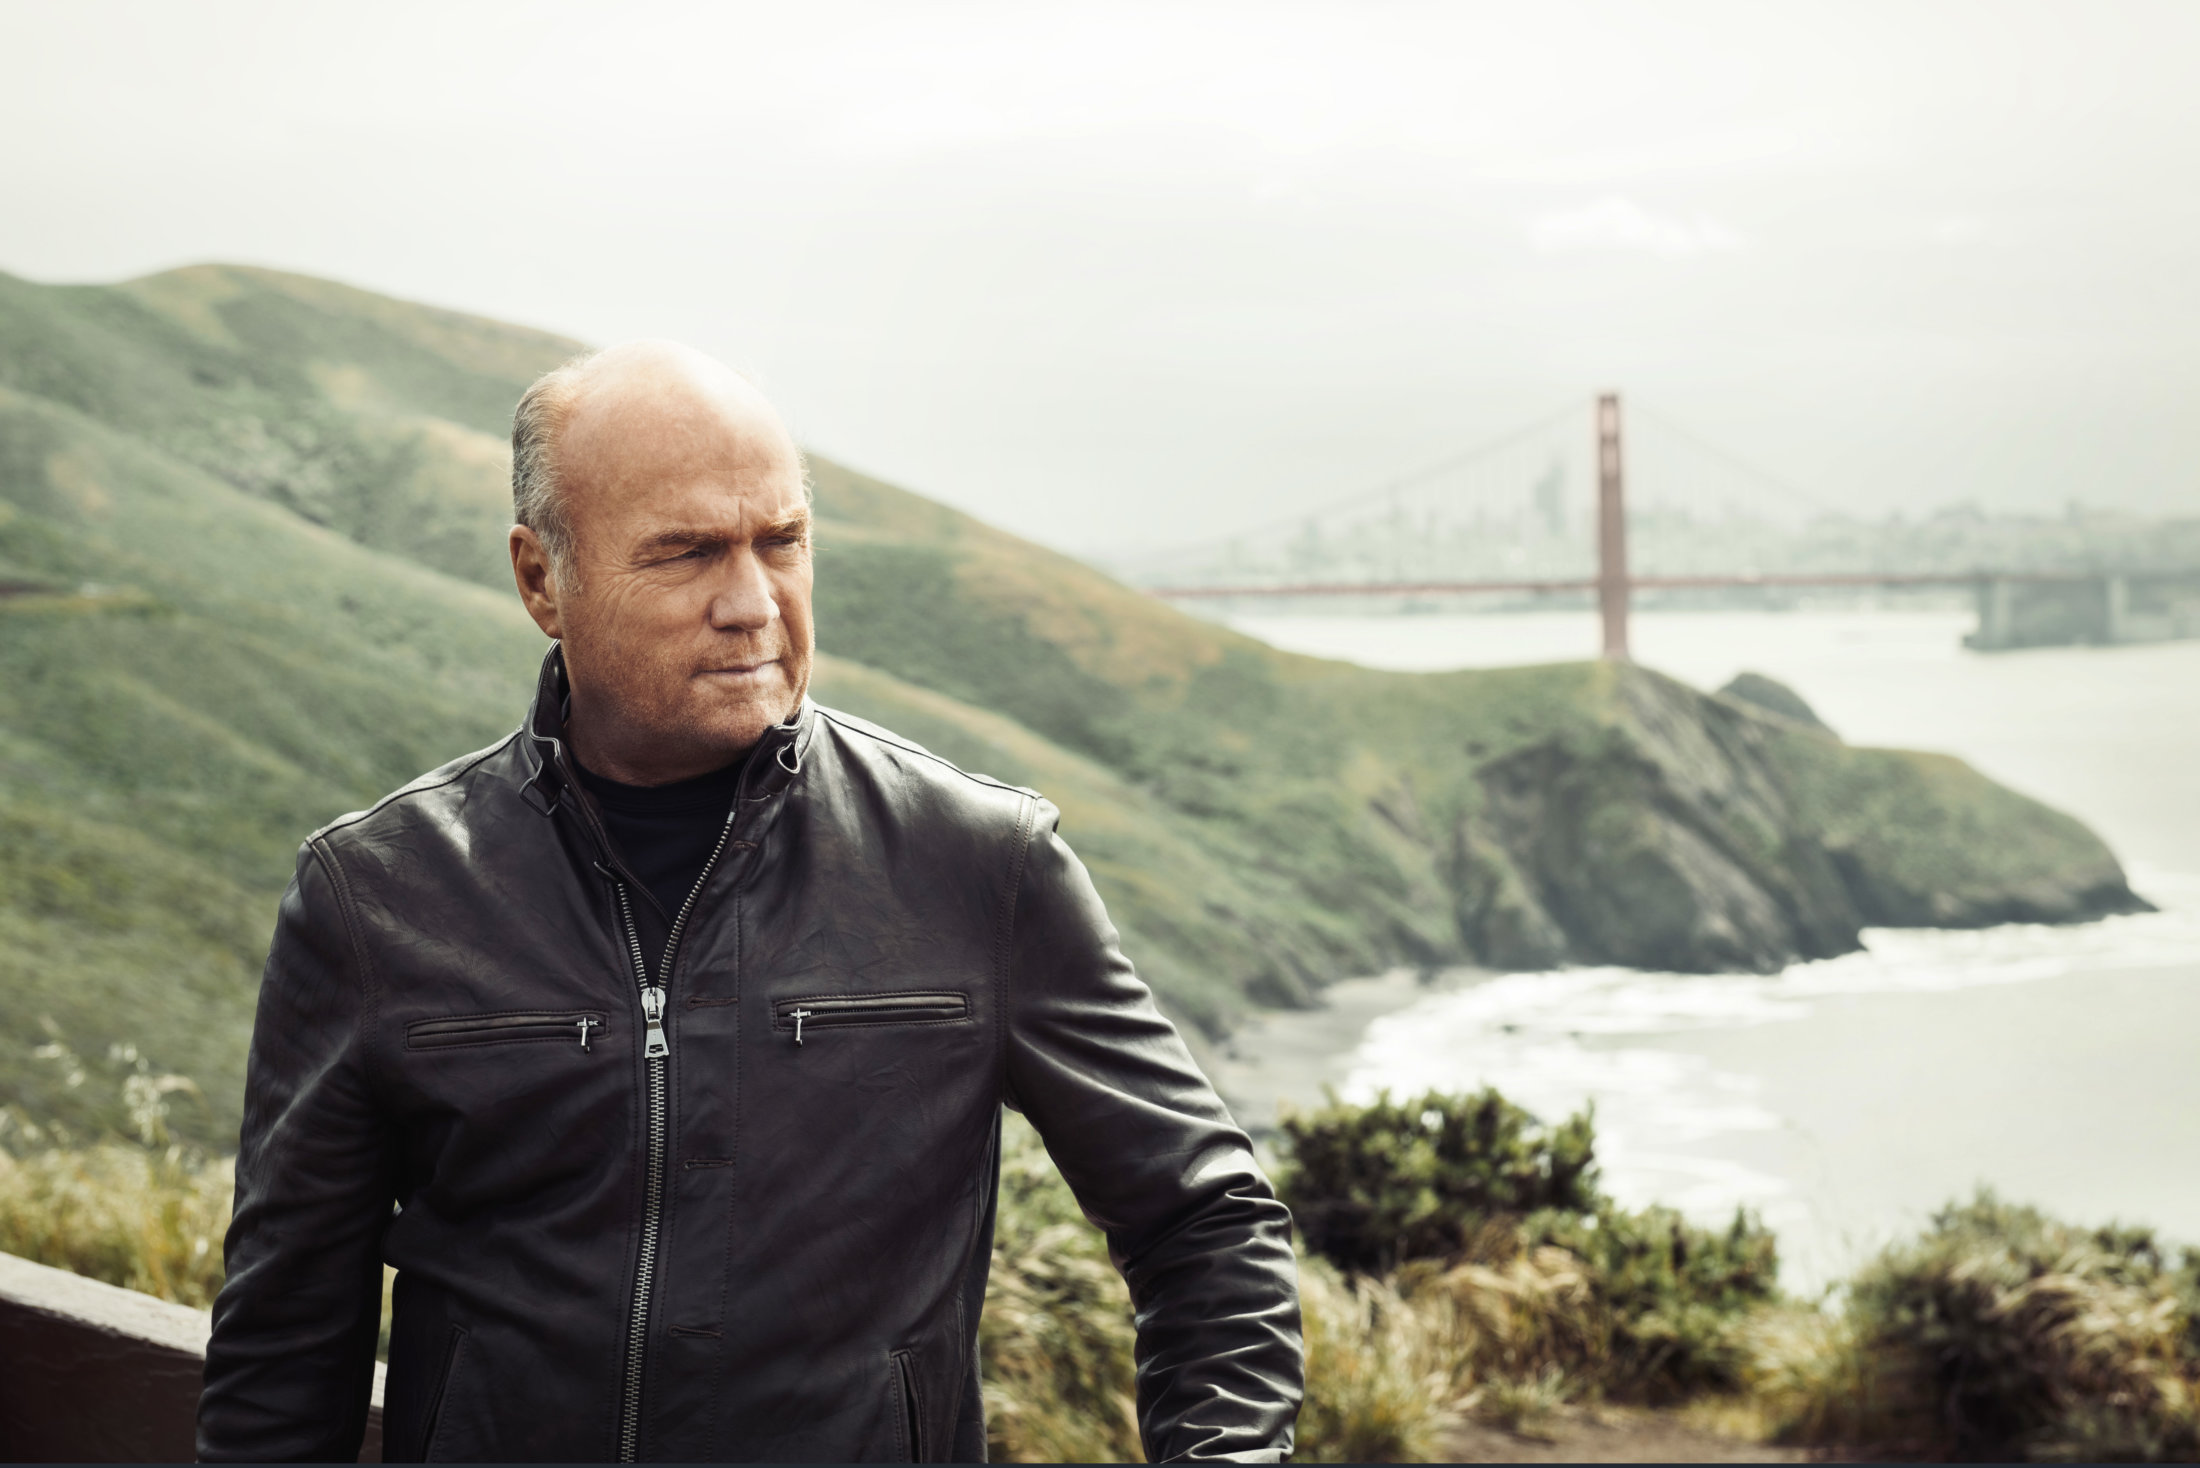 2018 Greg Laurie Photos